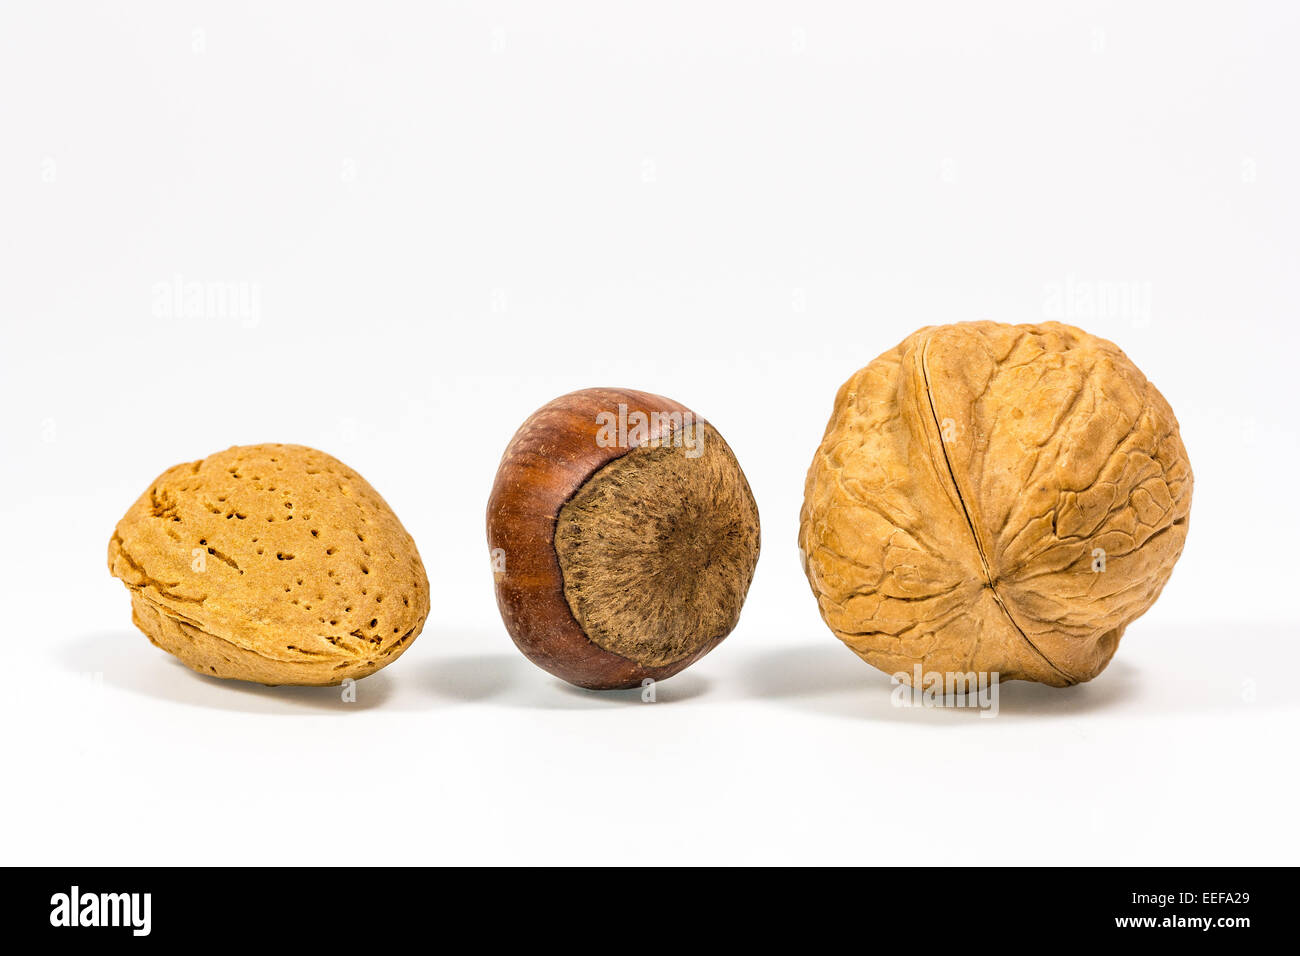 Three nuts with white background - Stock Image